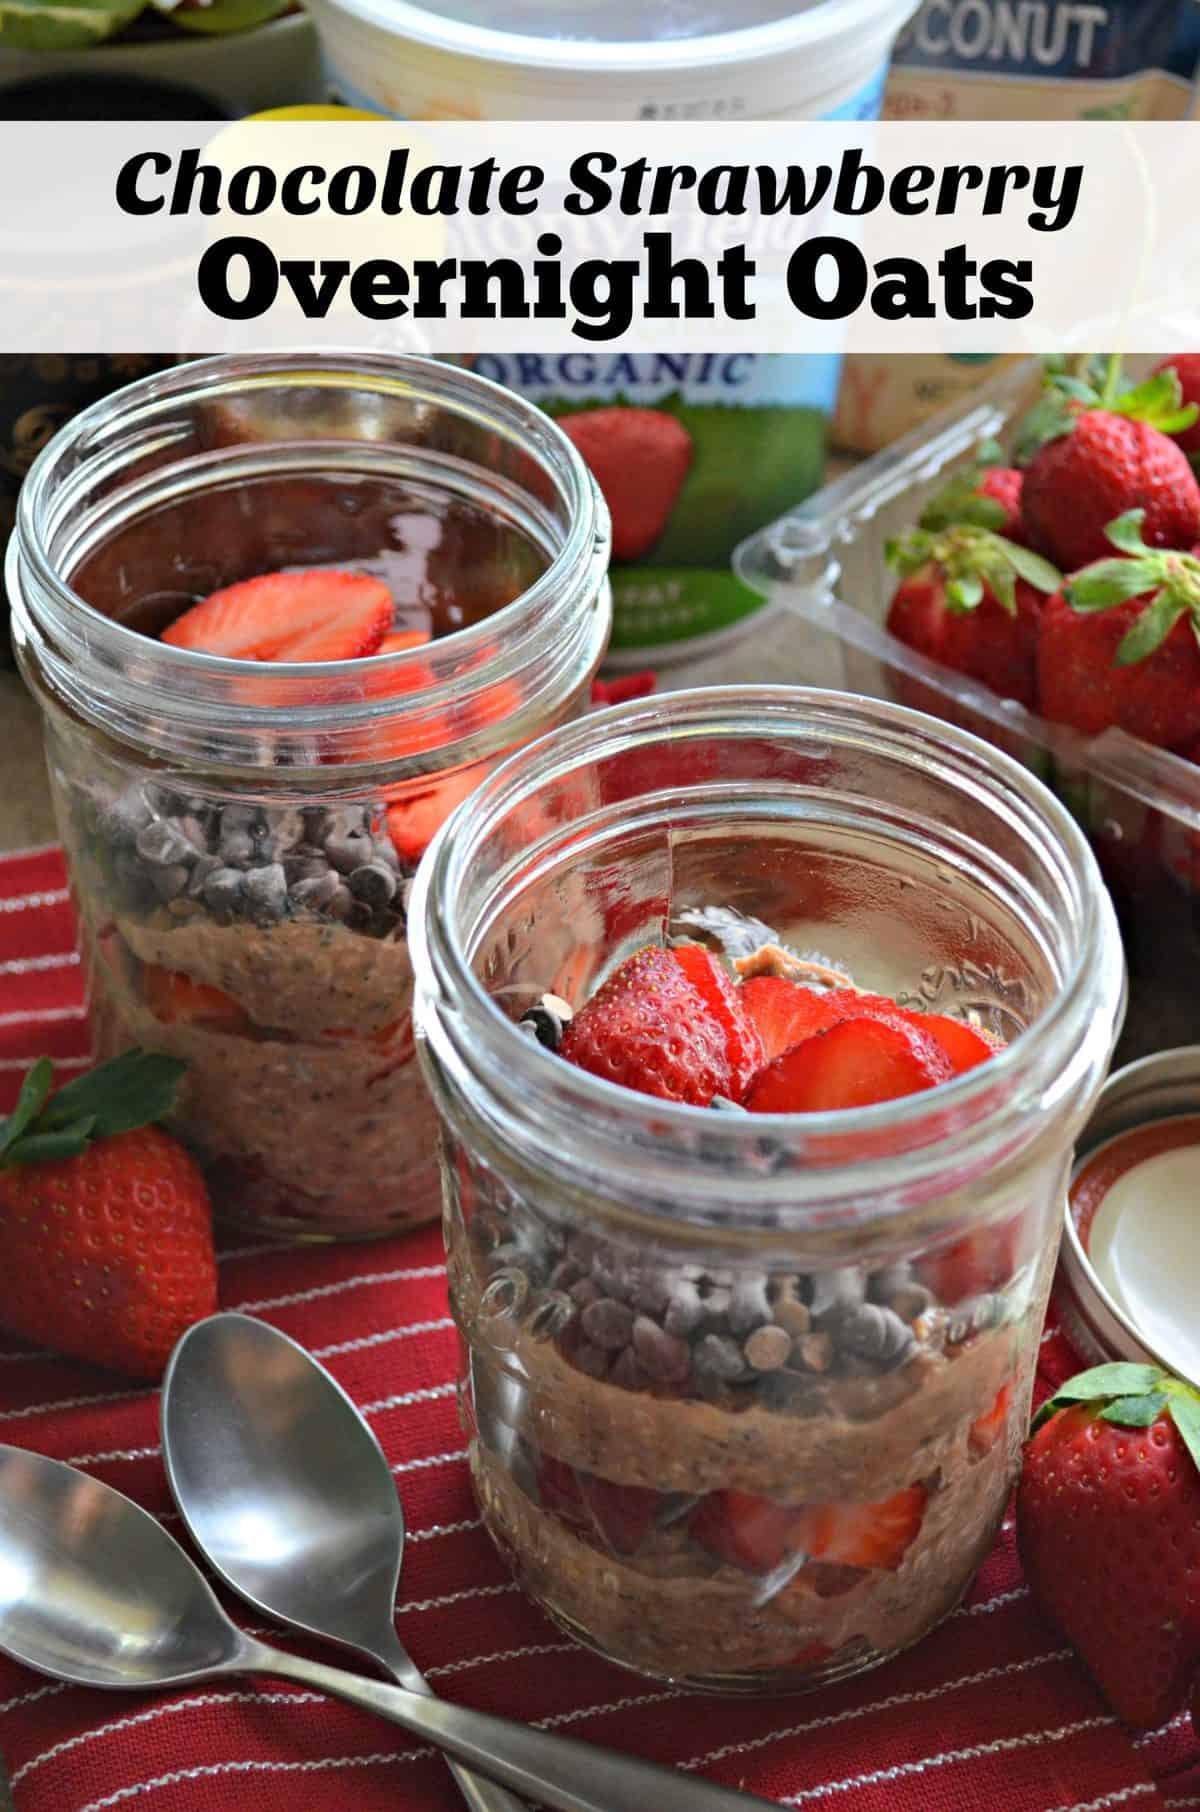 2 glass jars of layered oats, chocolate chips, and sliced strawberries on red tablecloth with strawberries.